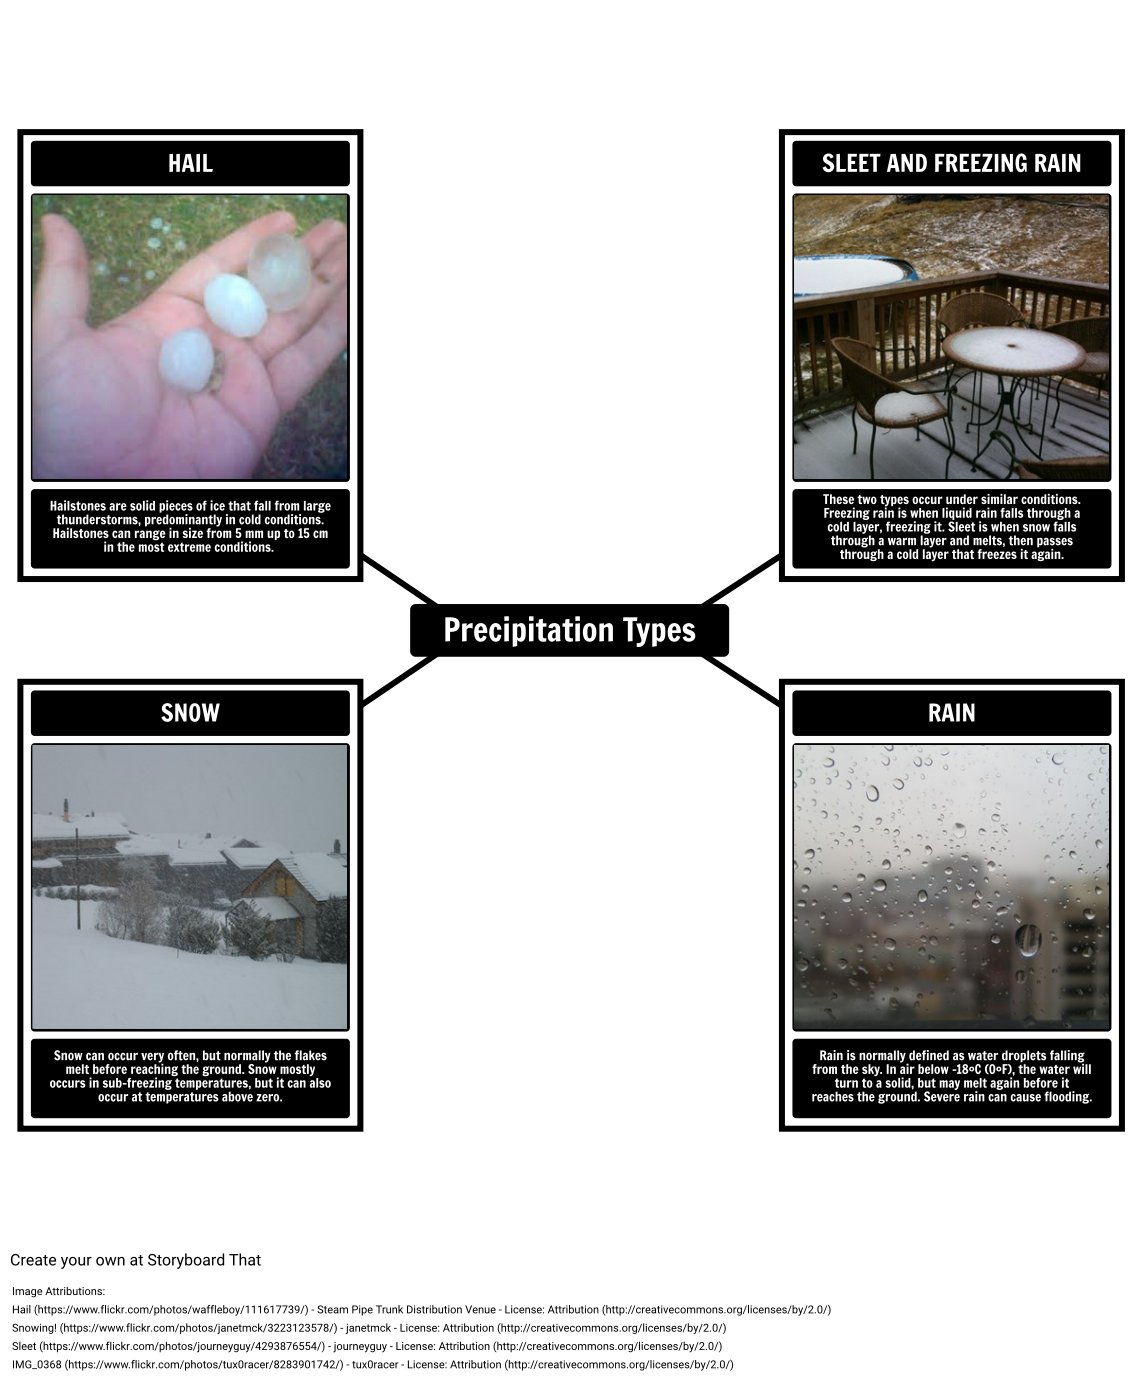 Precipitation Types